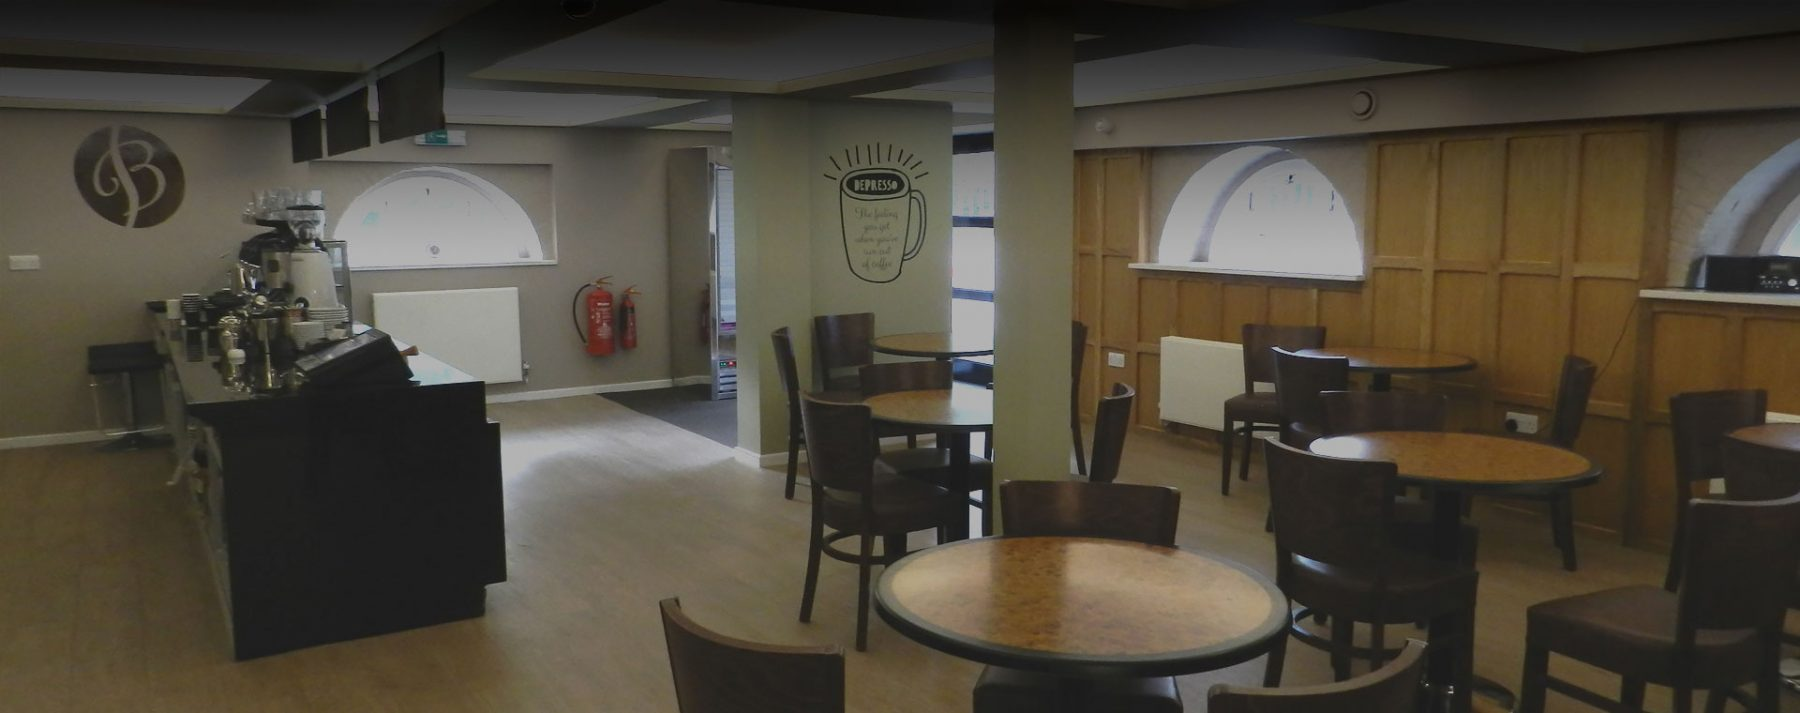 Halcyon Offices Leatherhead, WiFi Lounge & Meeting Rooms, Cafe, Barista